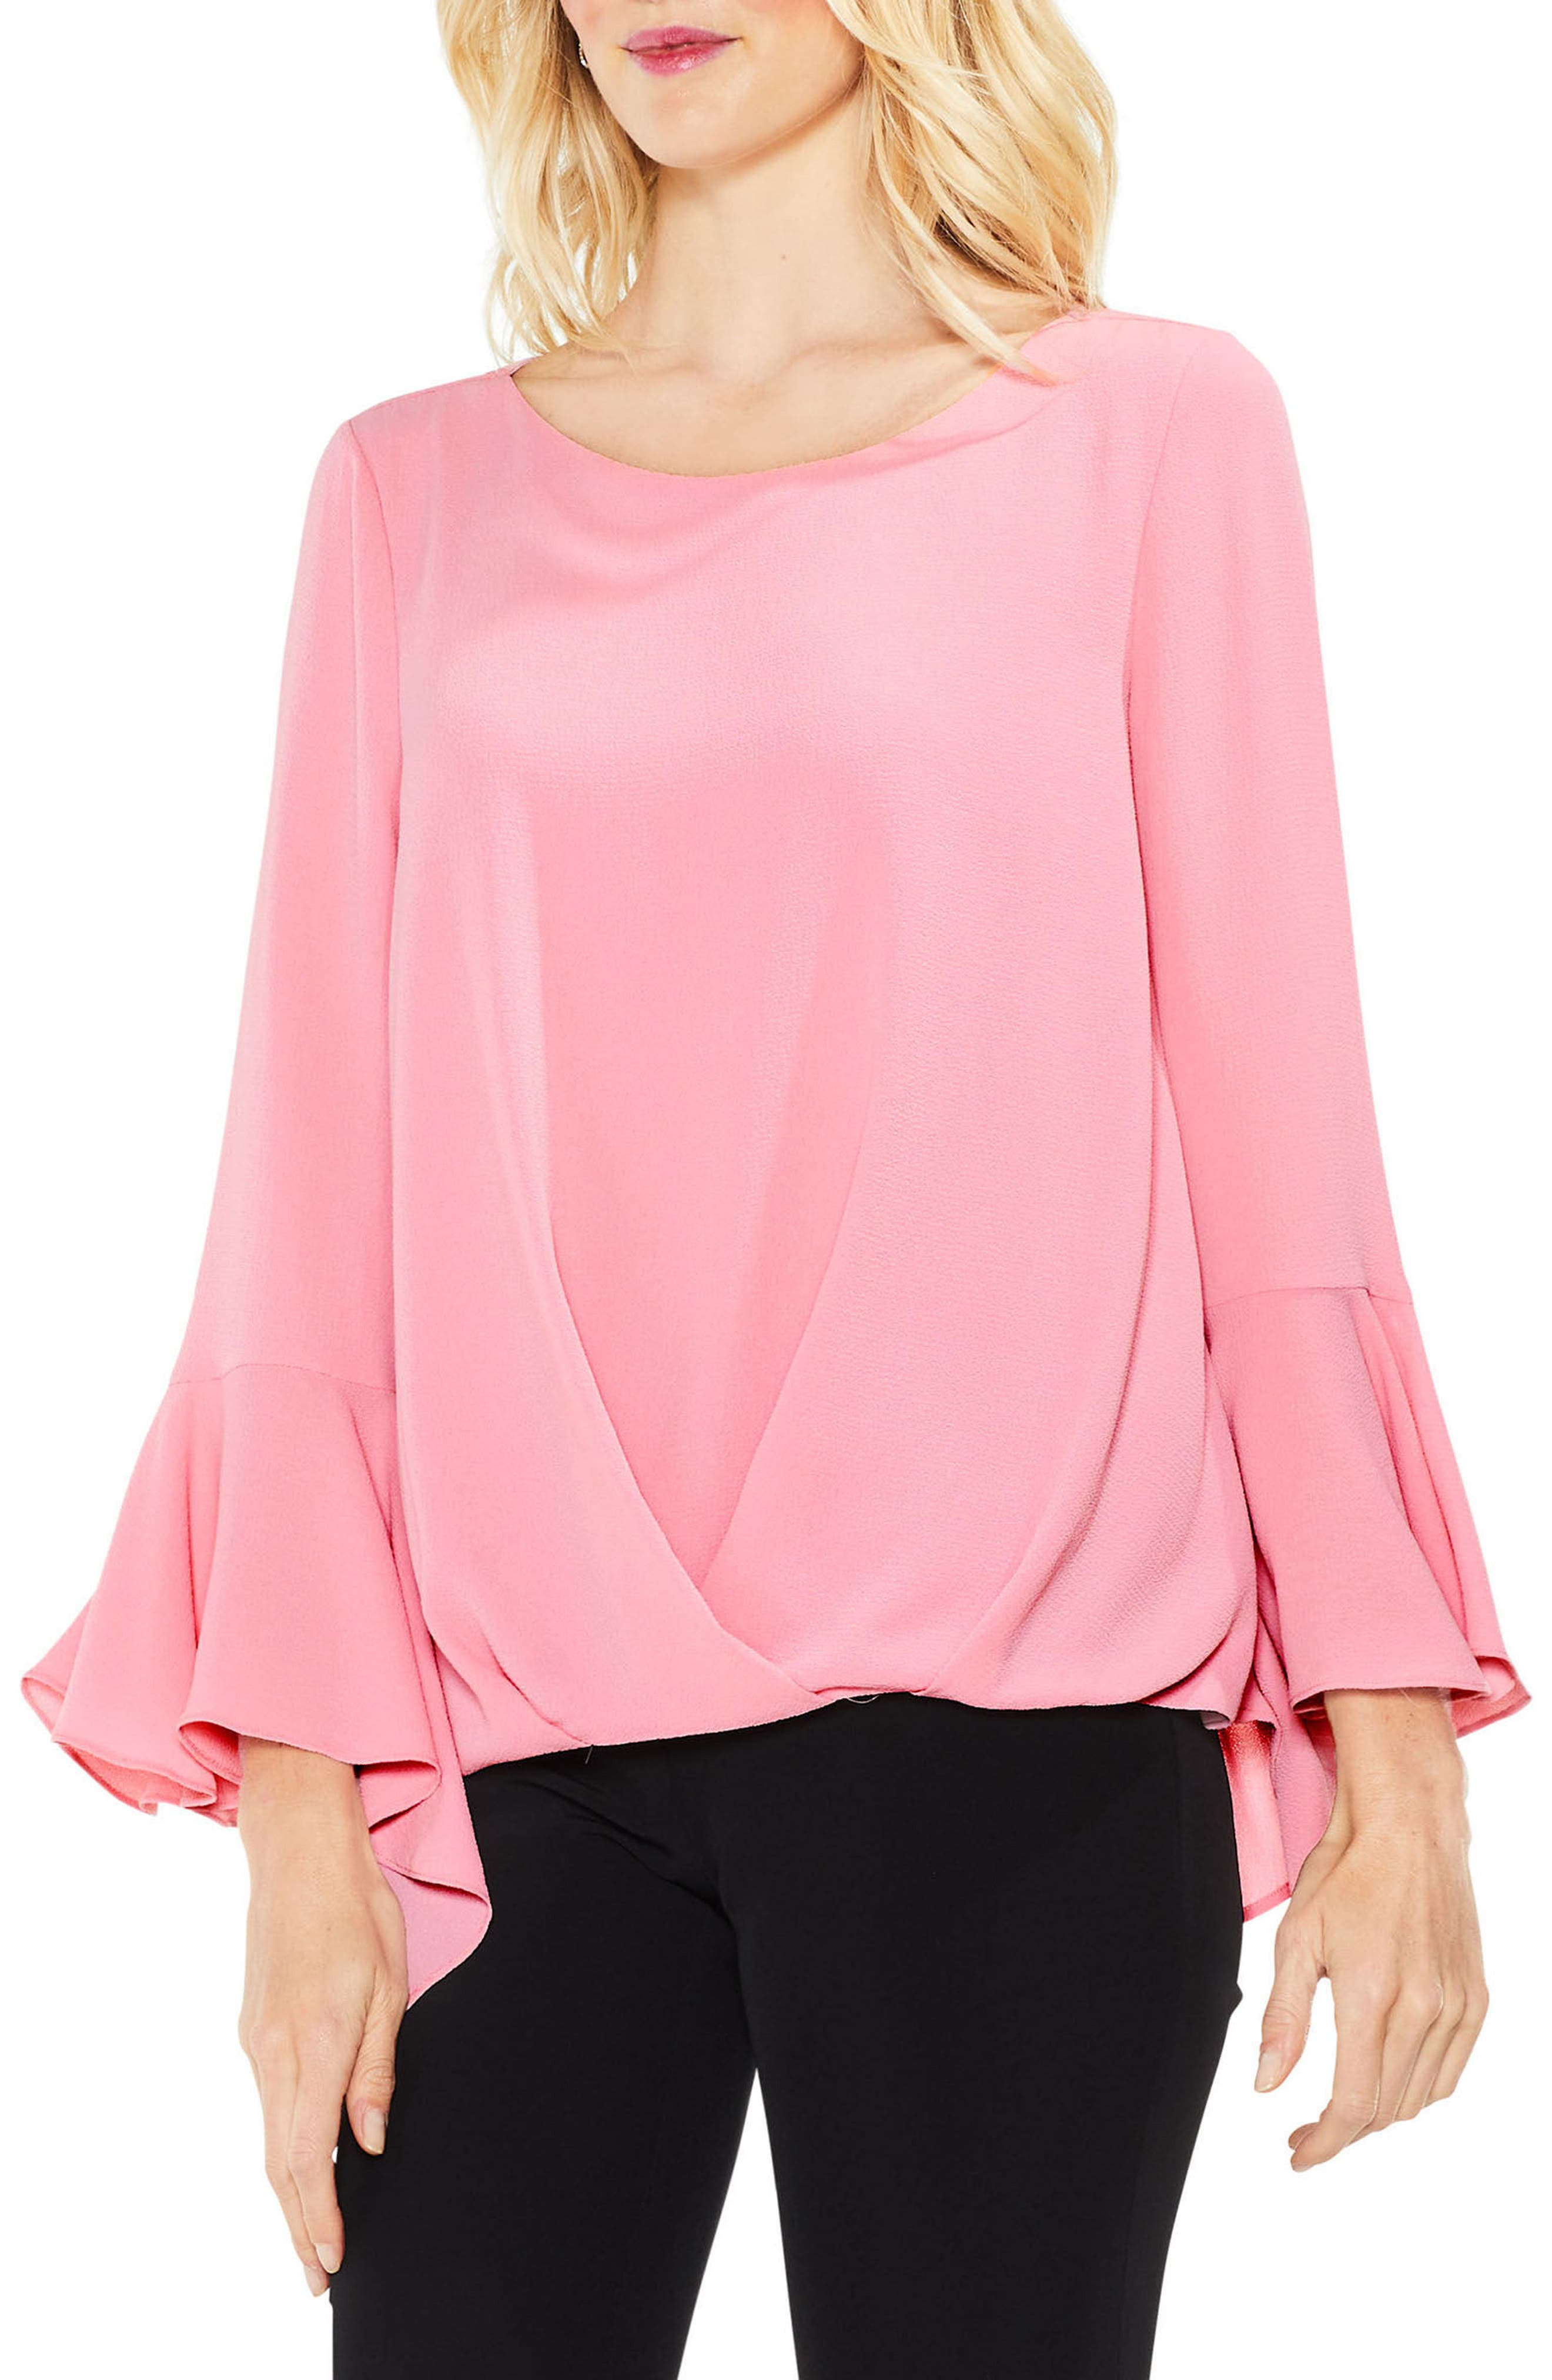 Bell Cuff Foldover Blouse,                             Main thumbnail 3, color,